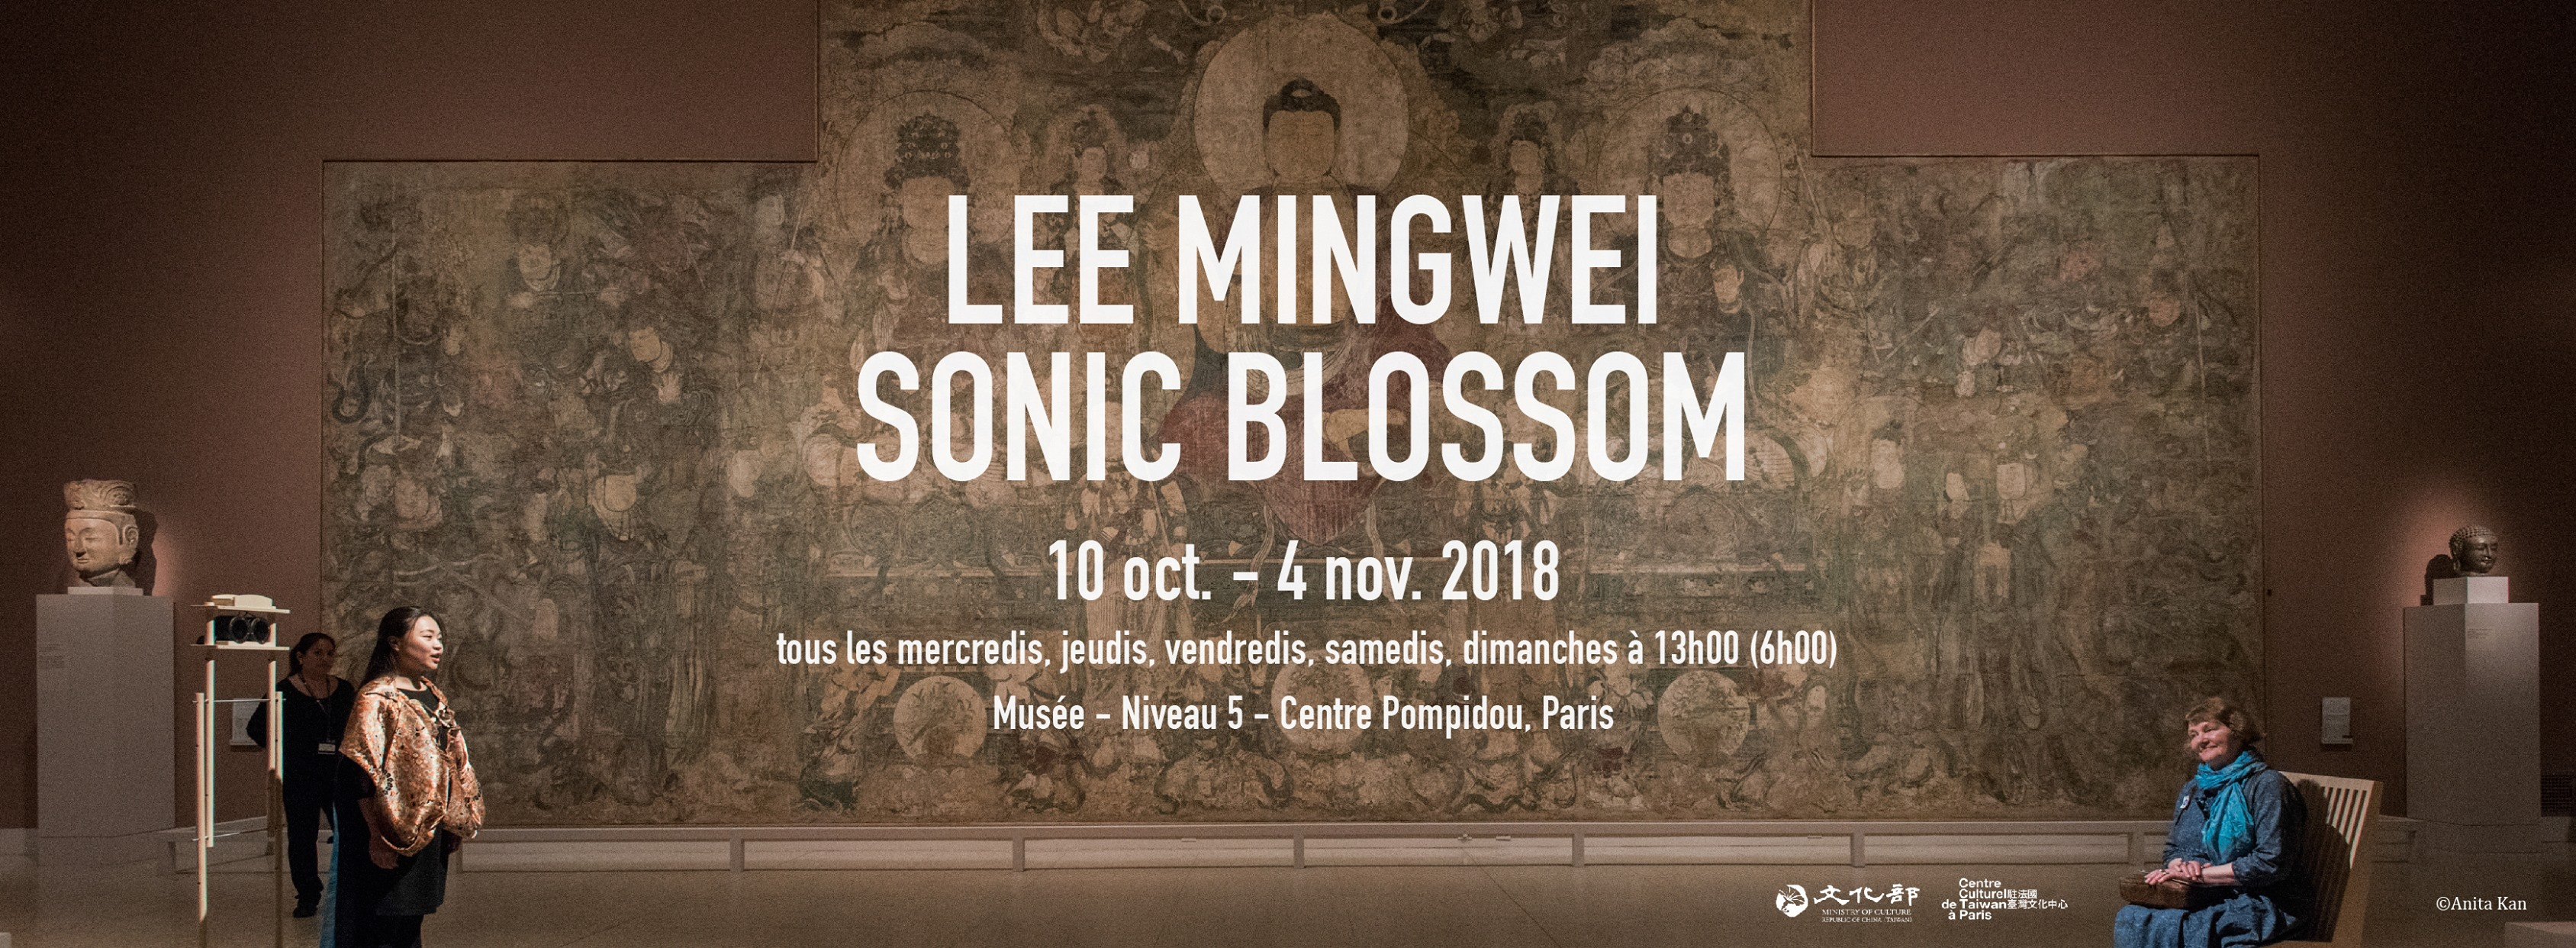 Lee Mingwei to hold second showcase at Pompidou Centre